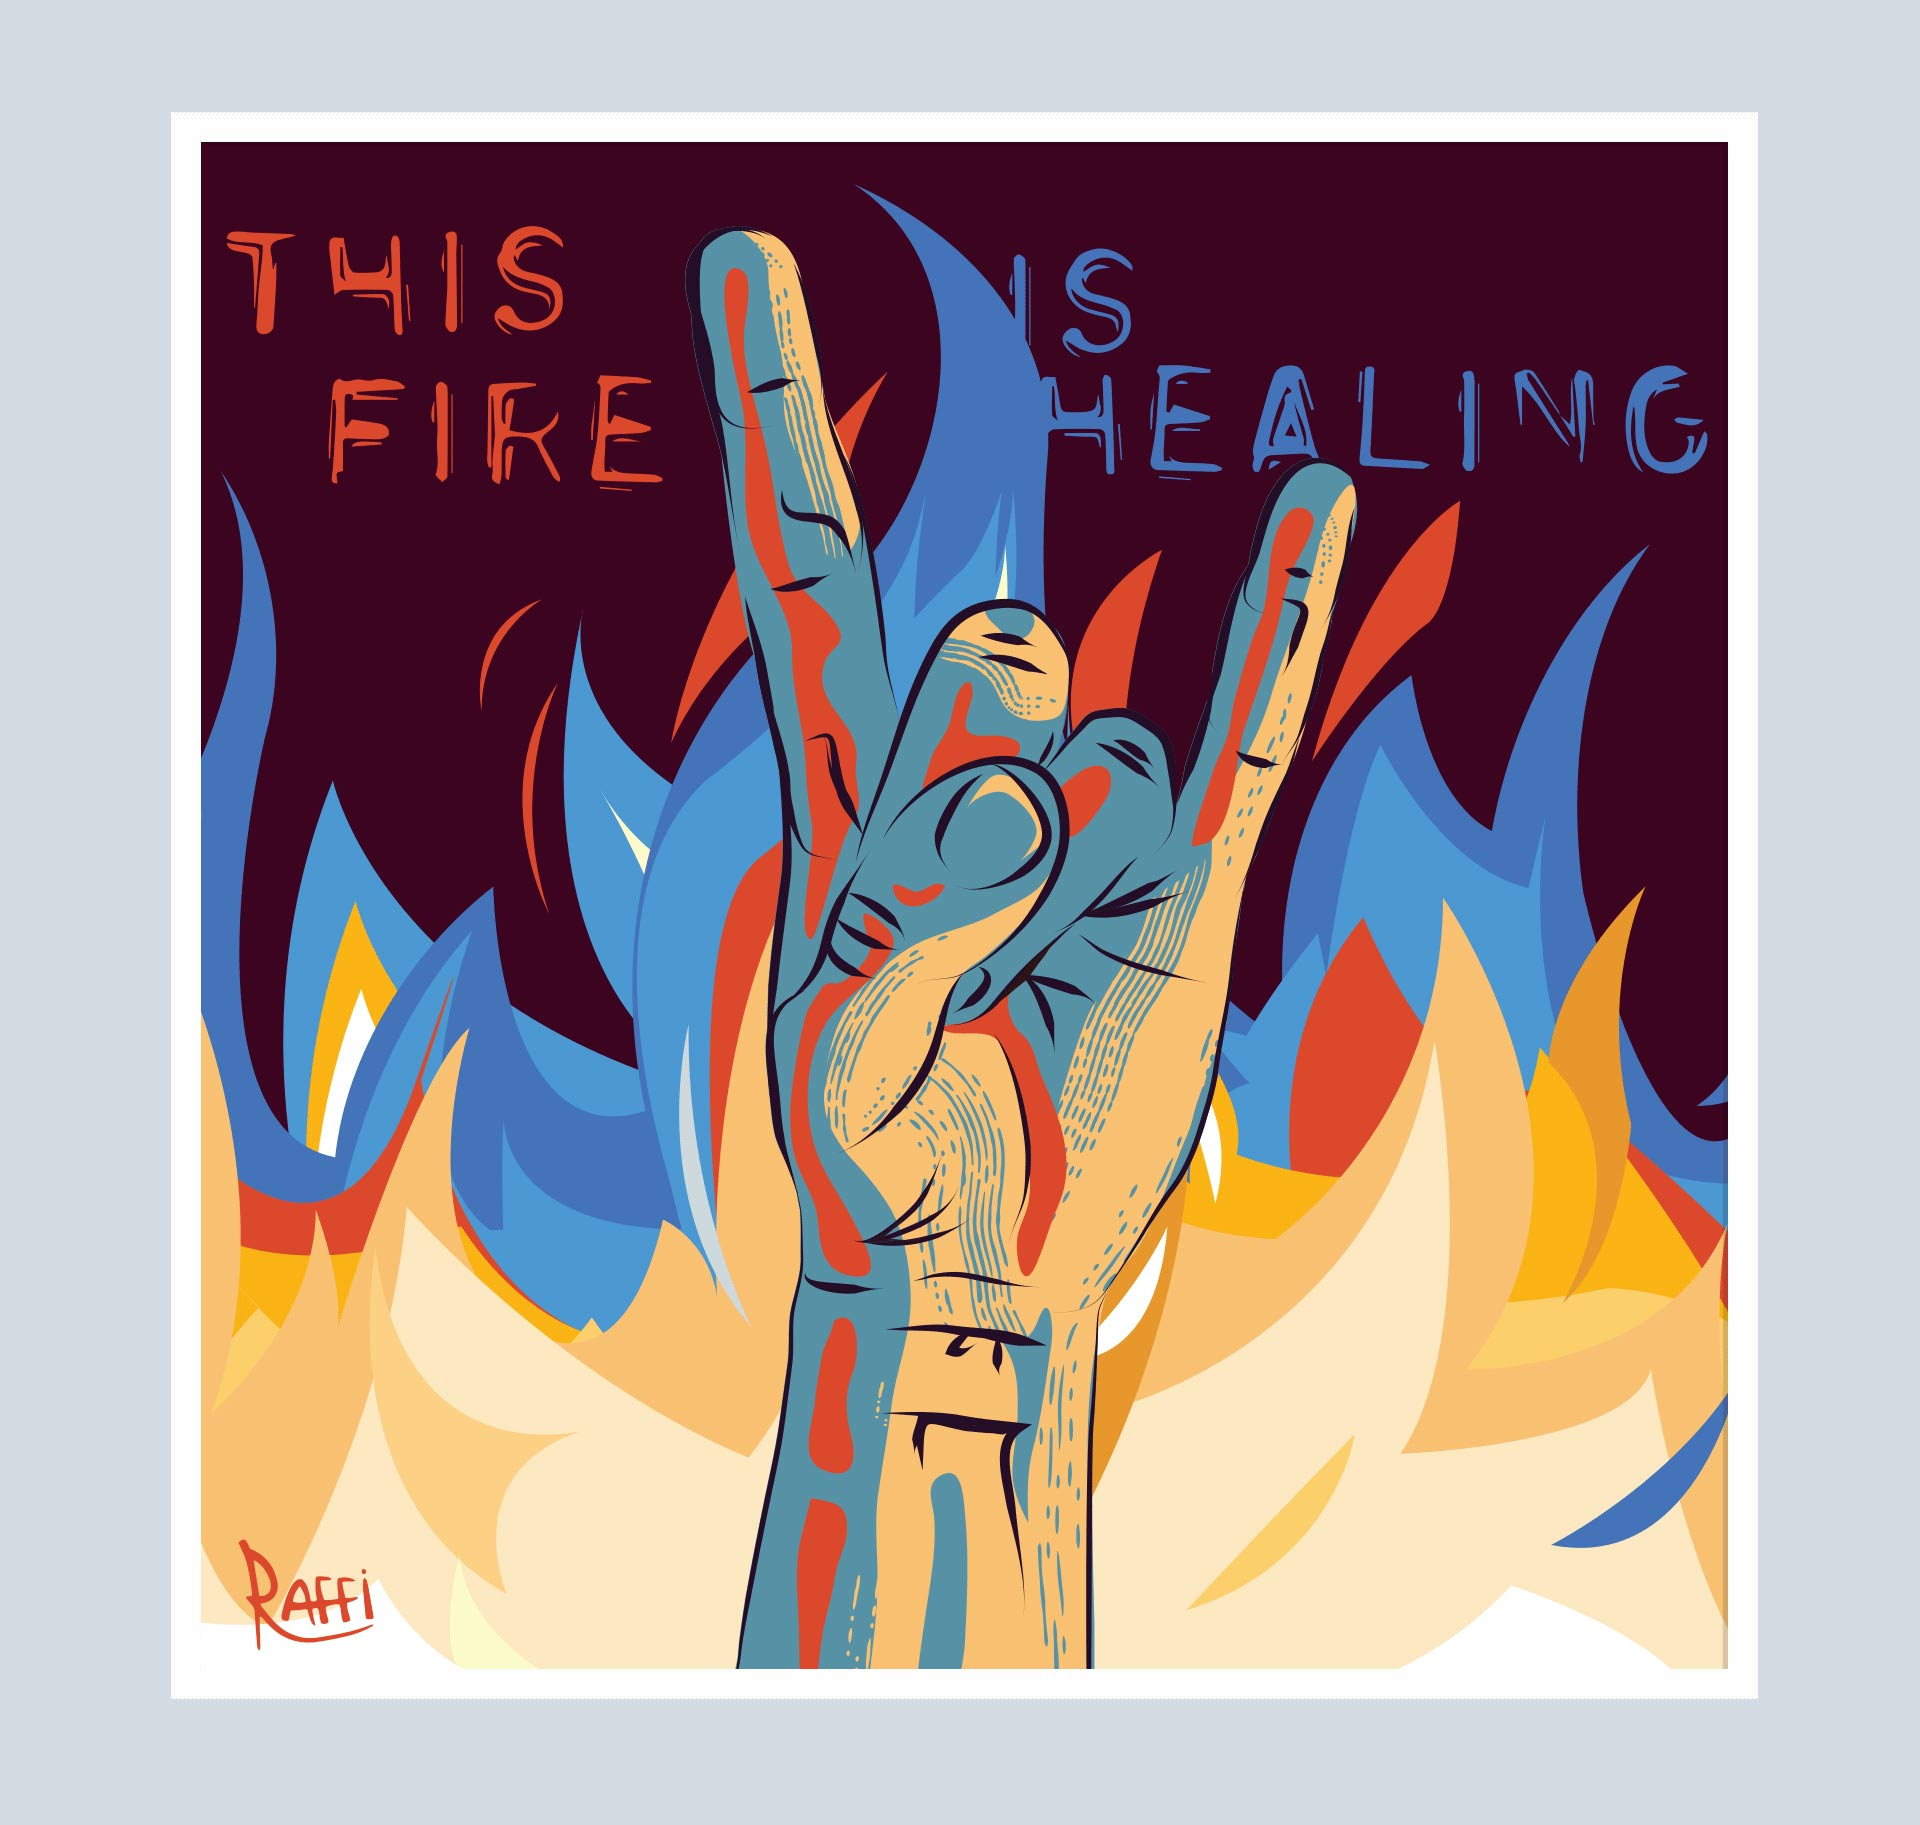 This Fire is Healing illustration. It depicts a hand doing the rock 'n roll sign with flames on the background.